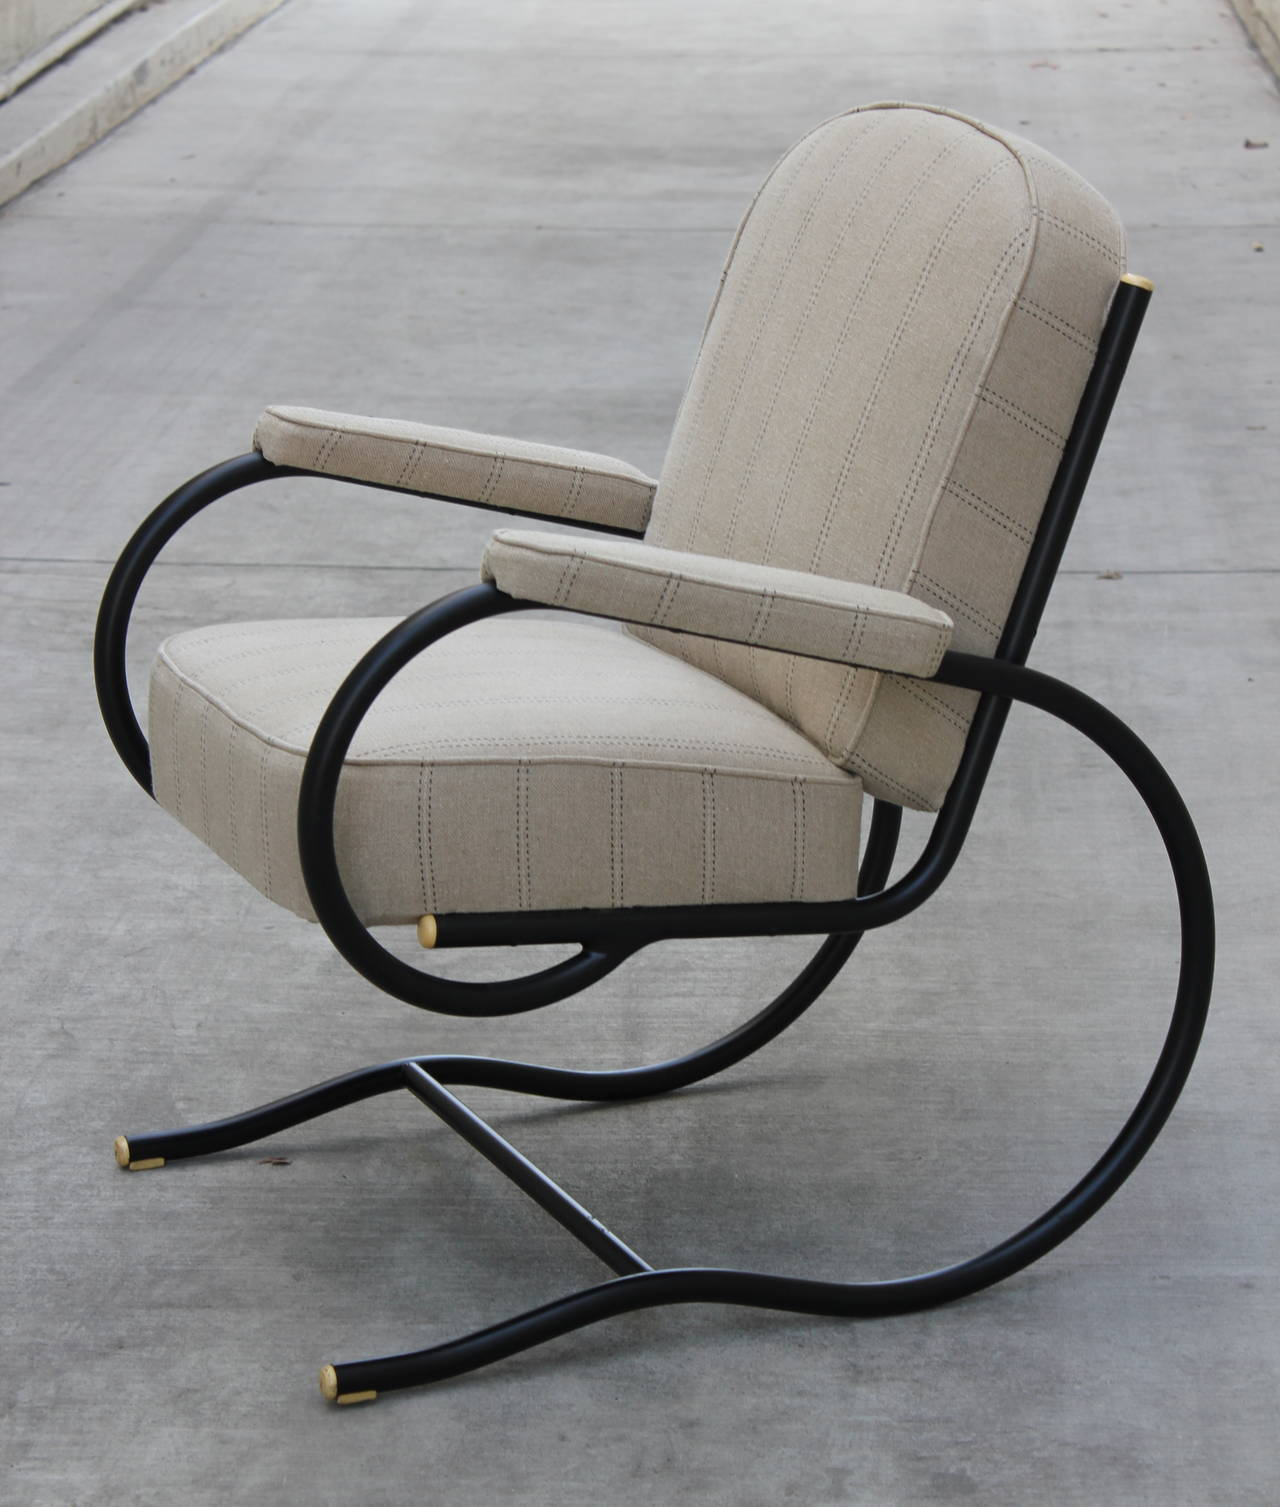 Pair of tubular steel chairs designed by Bastian Spade, France, 1930s. 